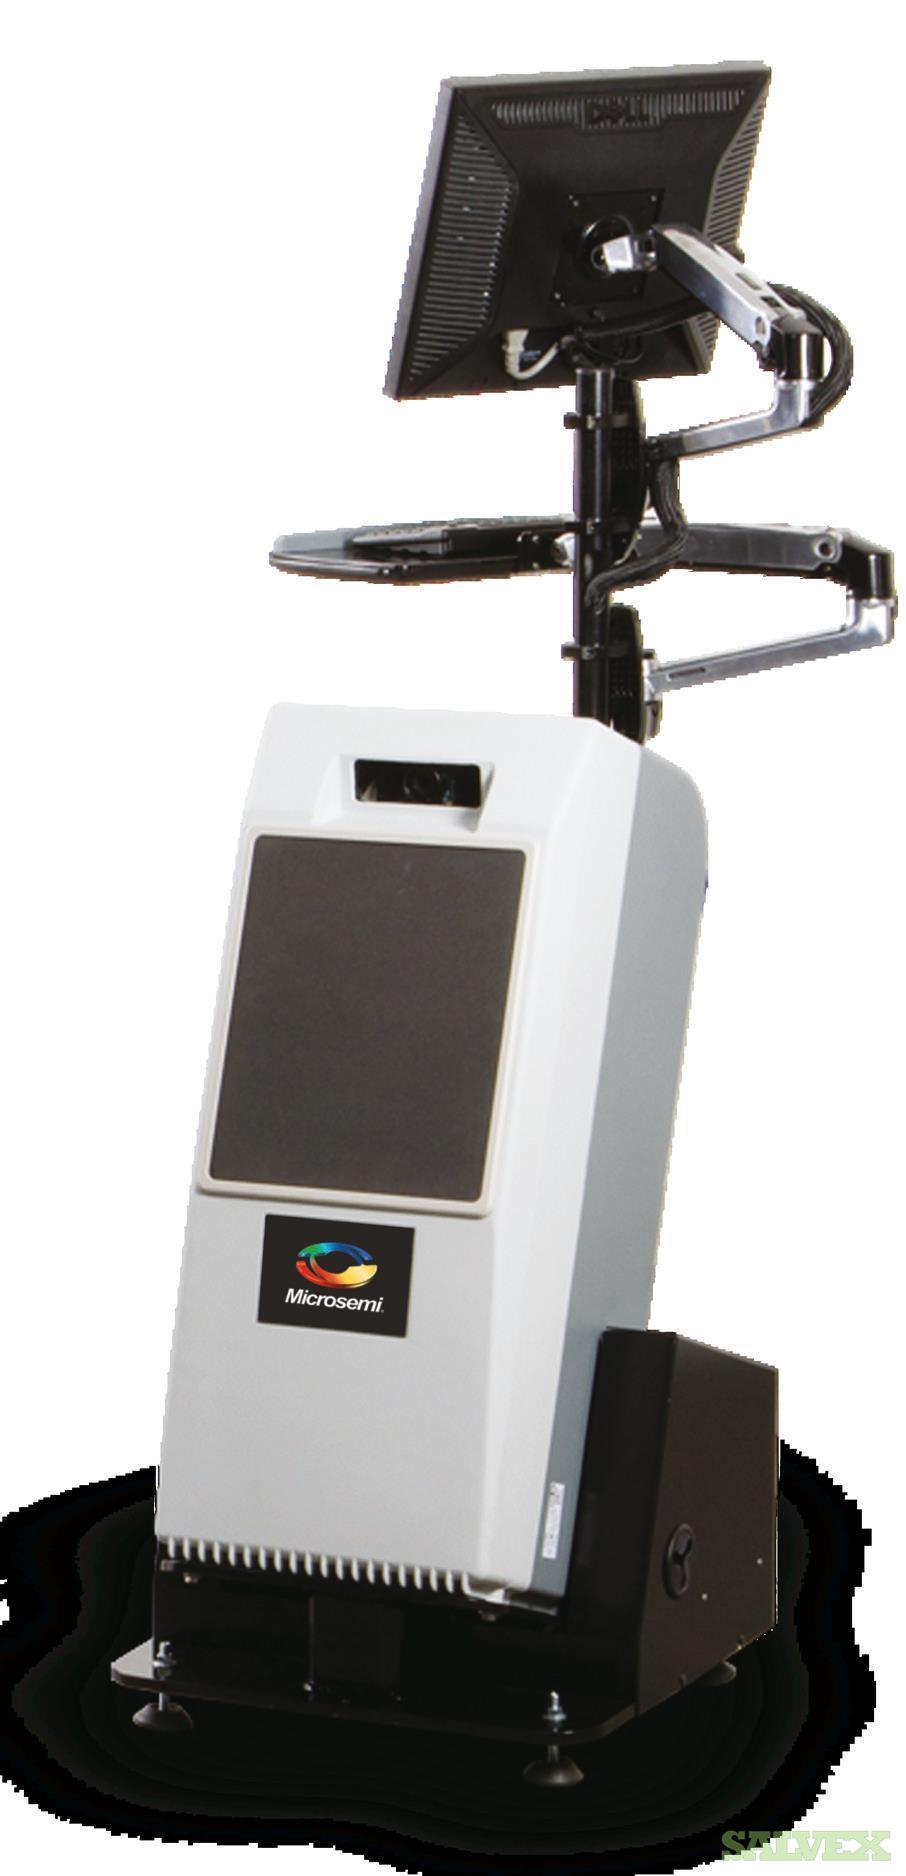 Microsemi LP-21C000K Gen 2 LP Solution Scanner - Security Body Scanner for Concealed Objects (1 Unit)